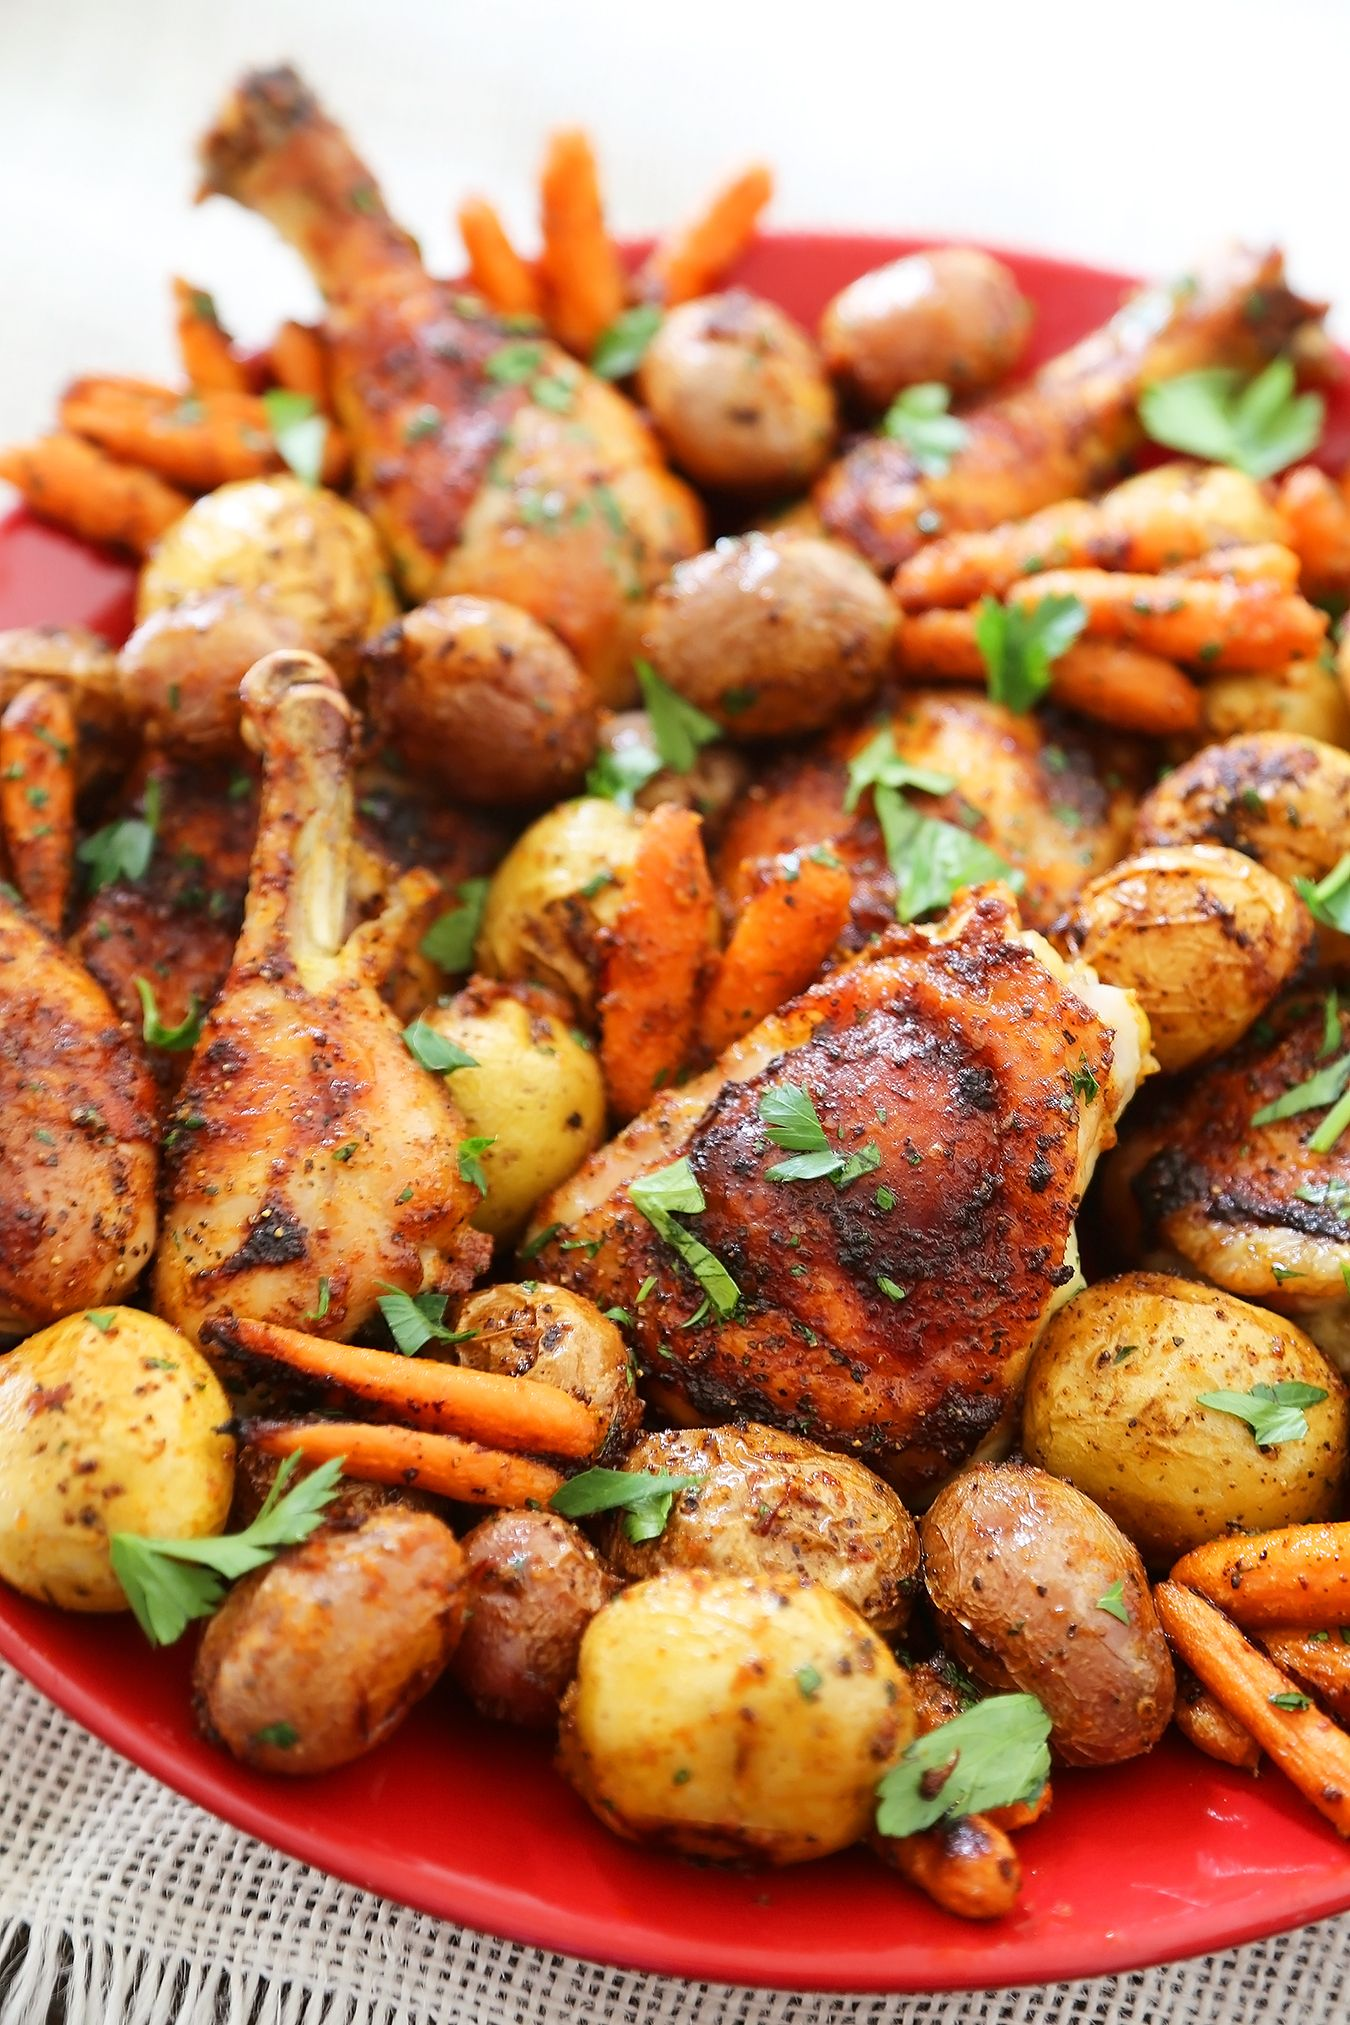 Chili-Garlic Roasted Chicken with Potatoes & Carrots